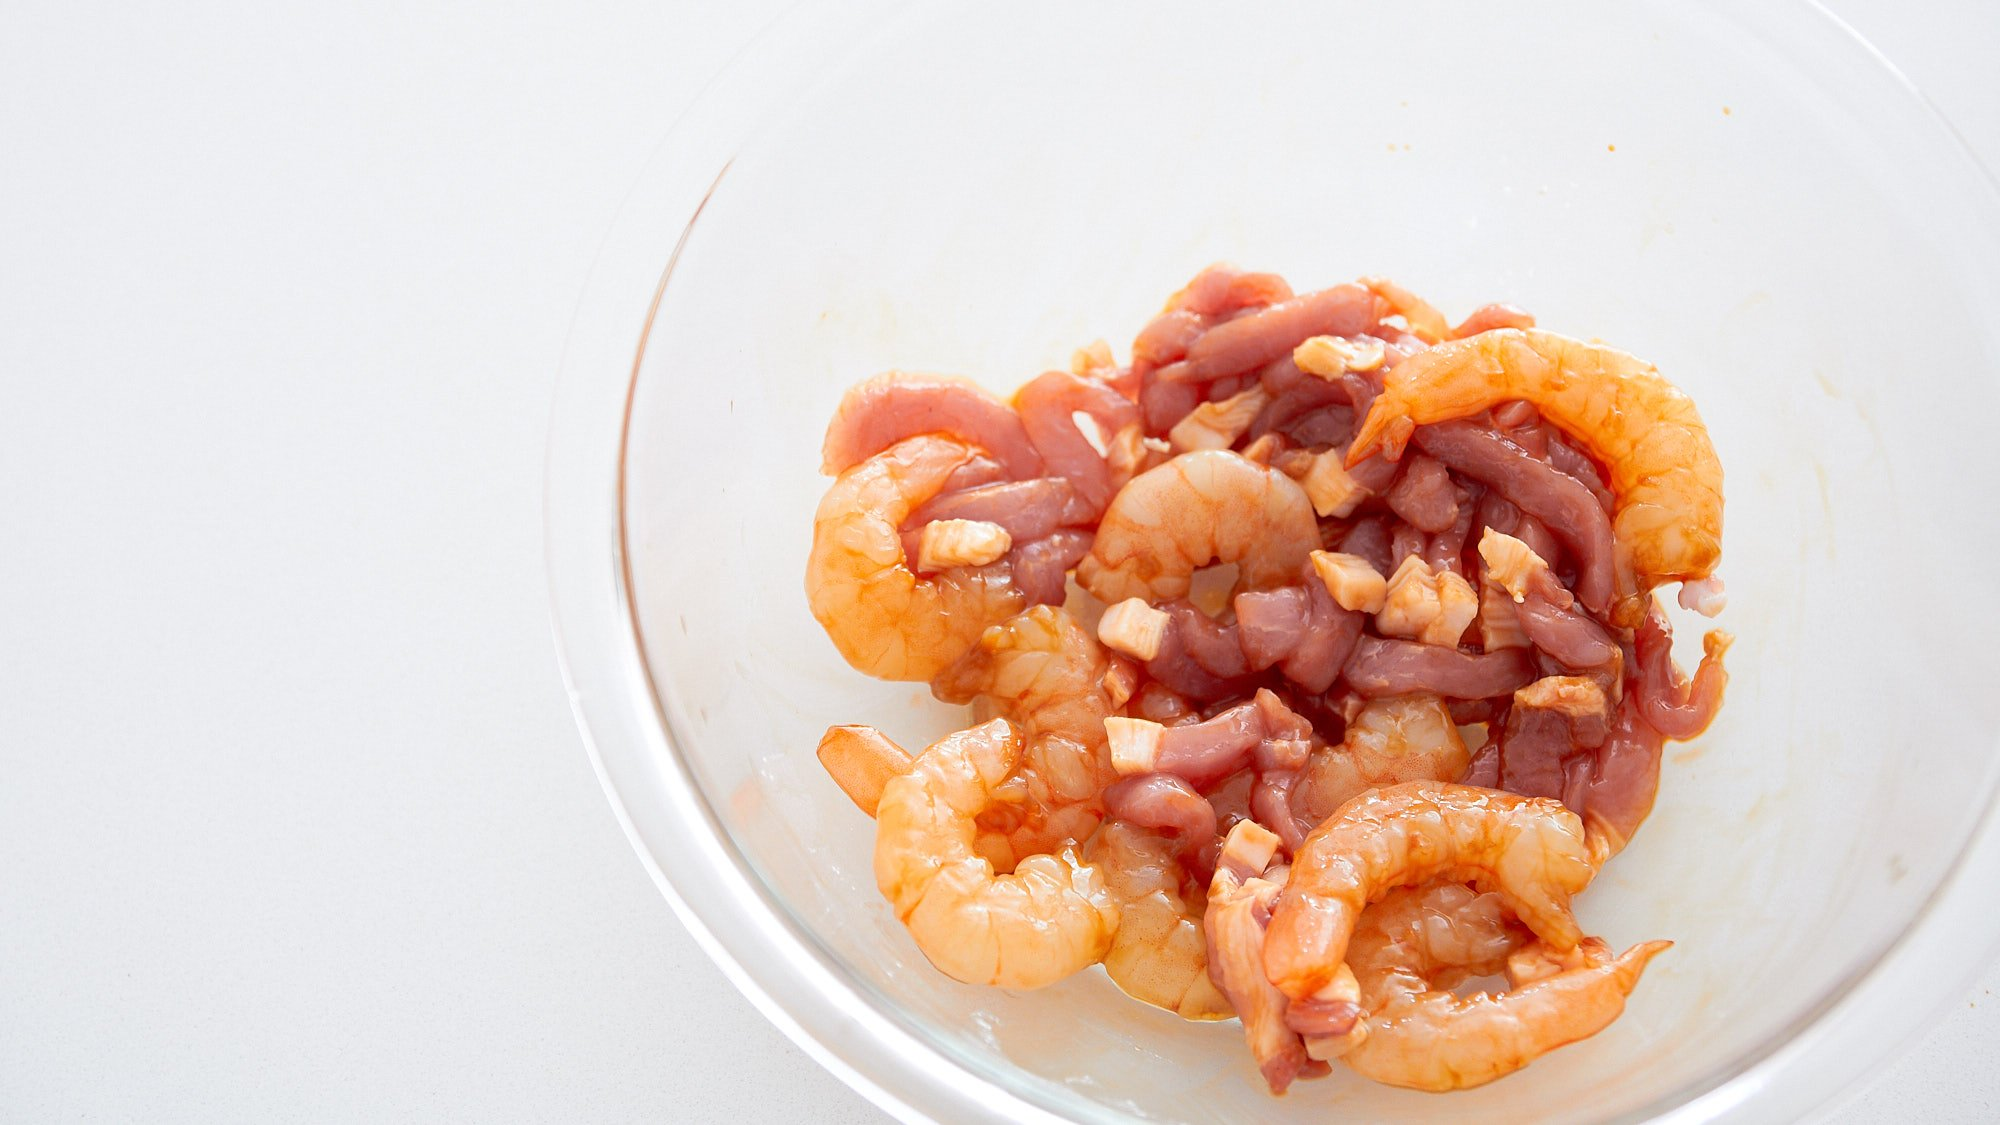 Marinate the shrimp and pork in Shaoxing and soy sauce.